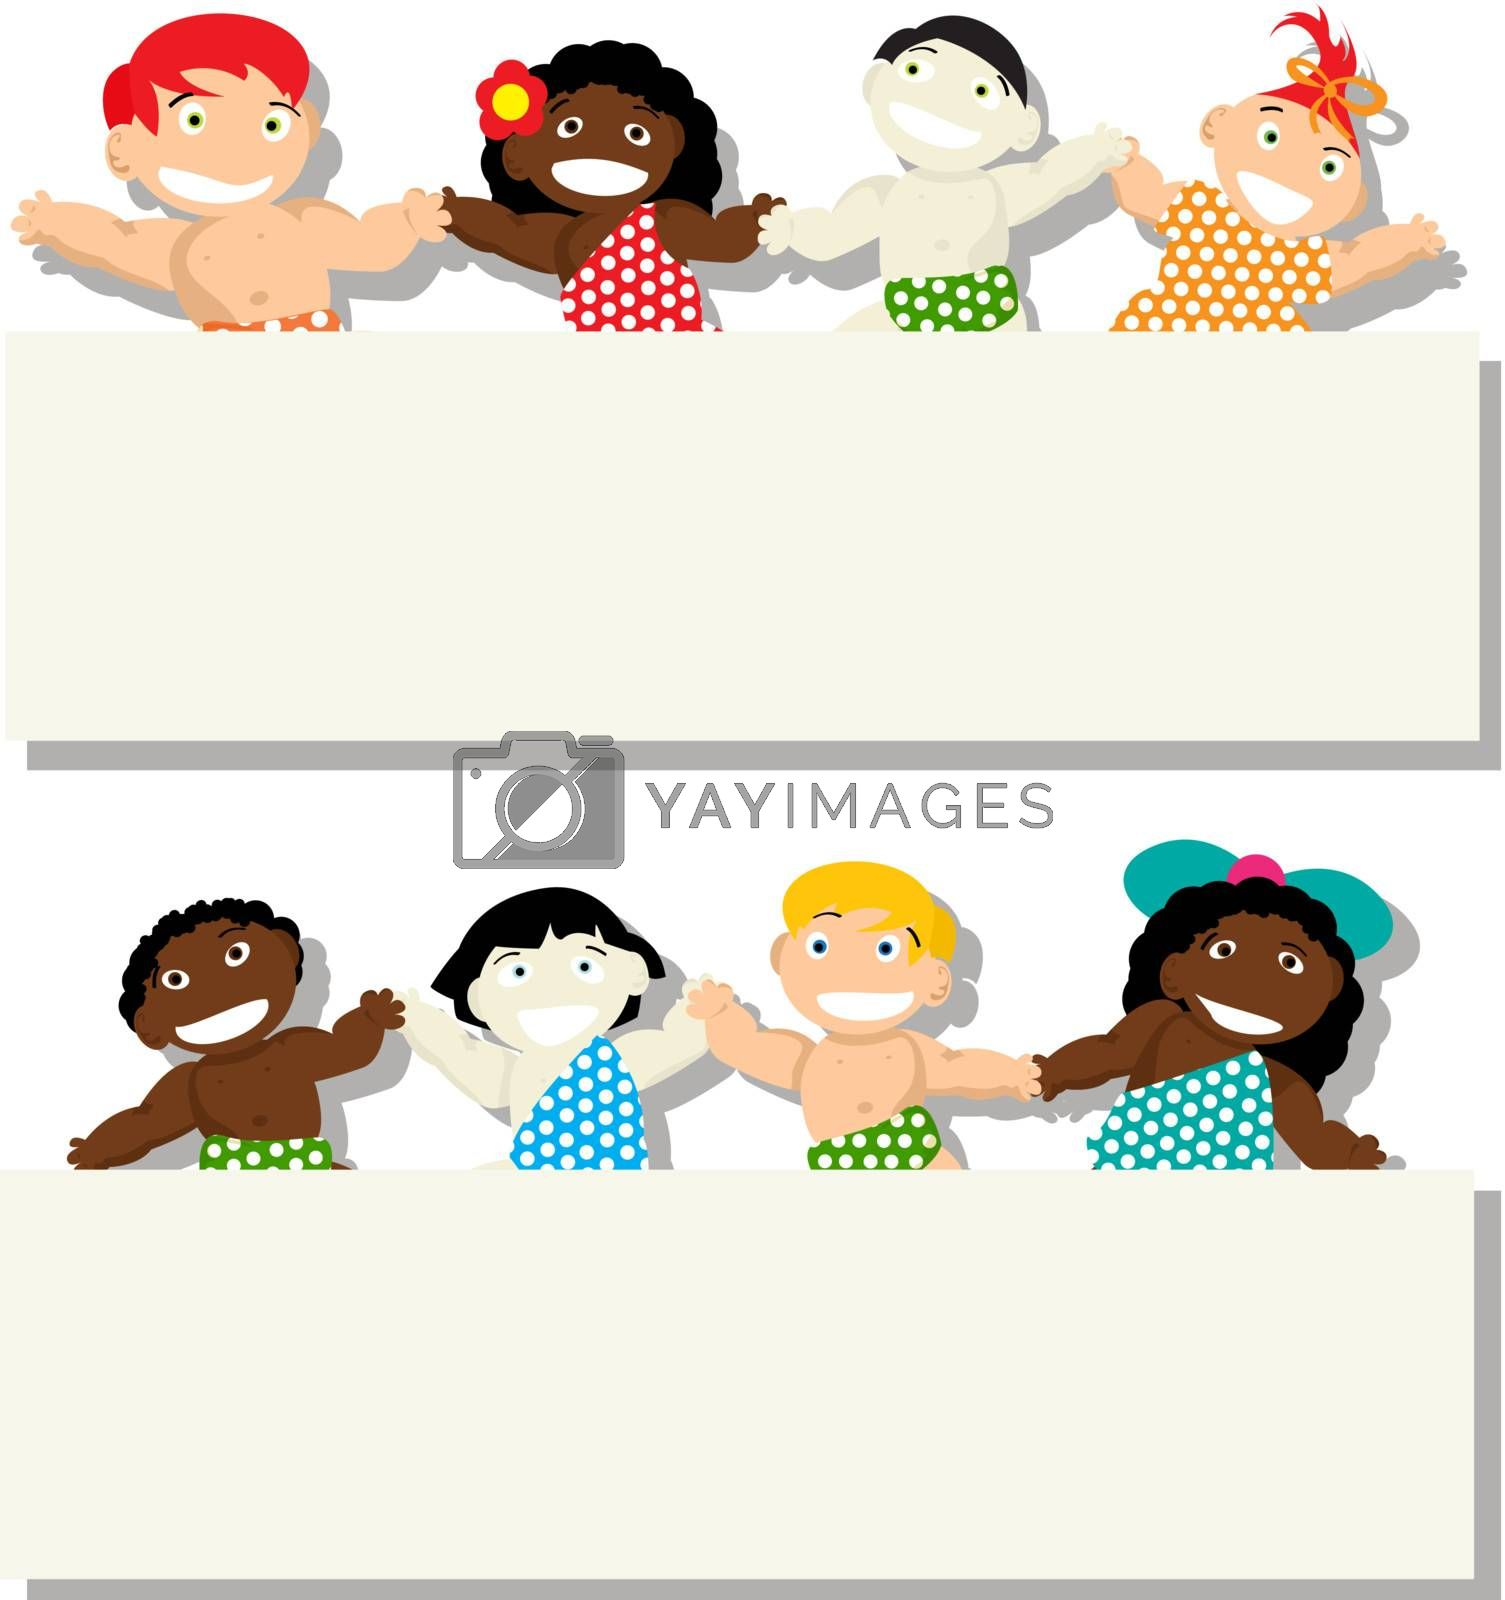 Babies of different ethnicity holding banner, isolated objects on white background